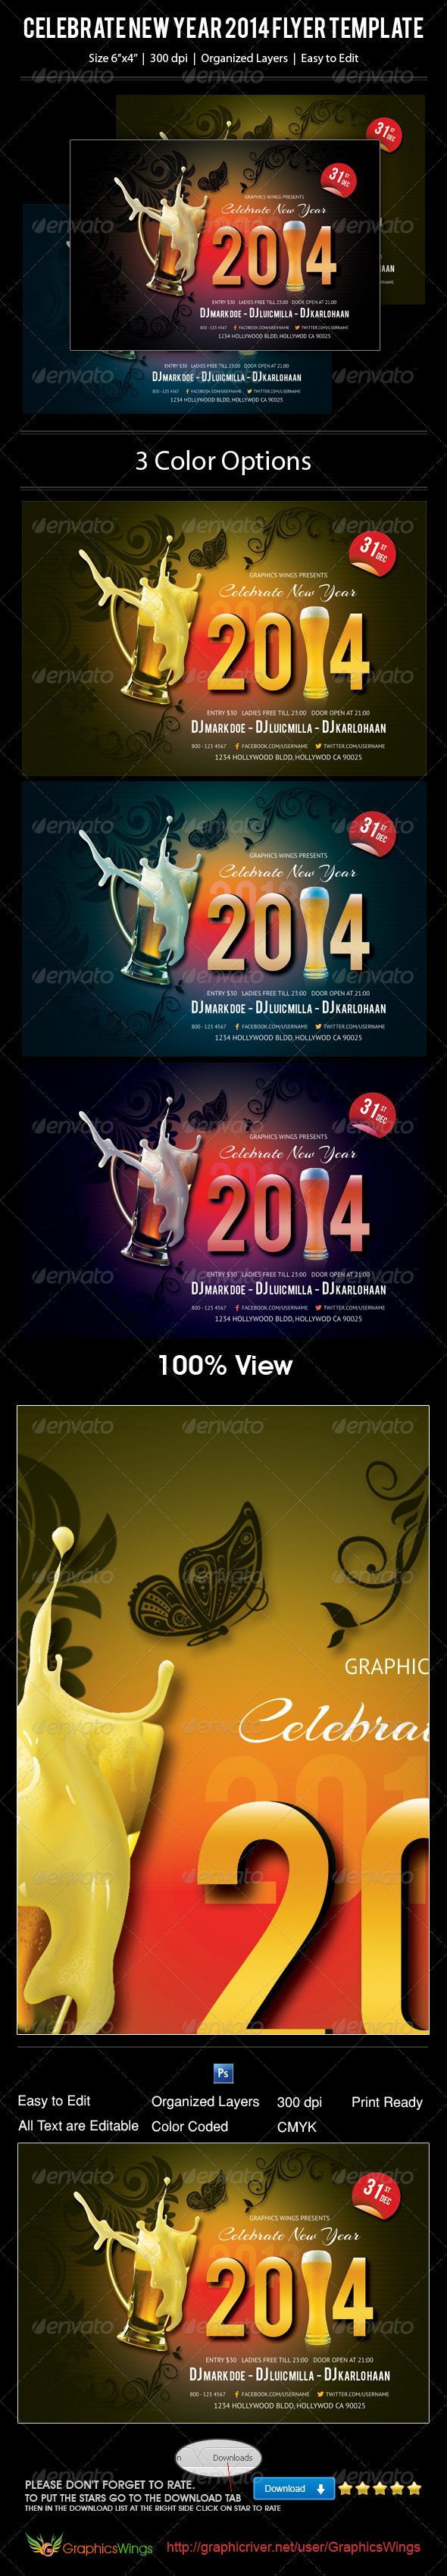 Celebrate New Year 2014 Flyer Template - Events Flyers